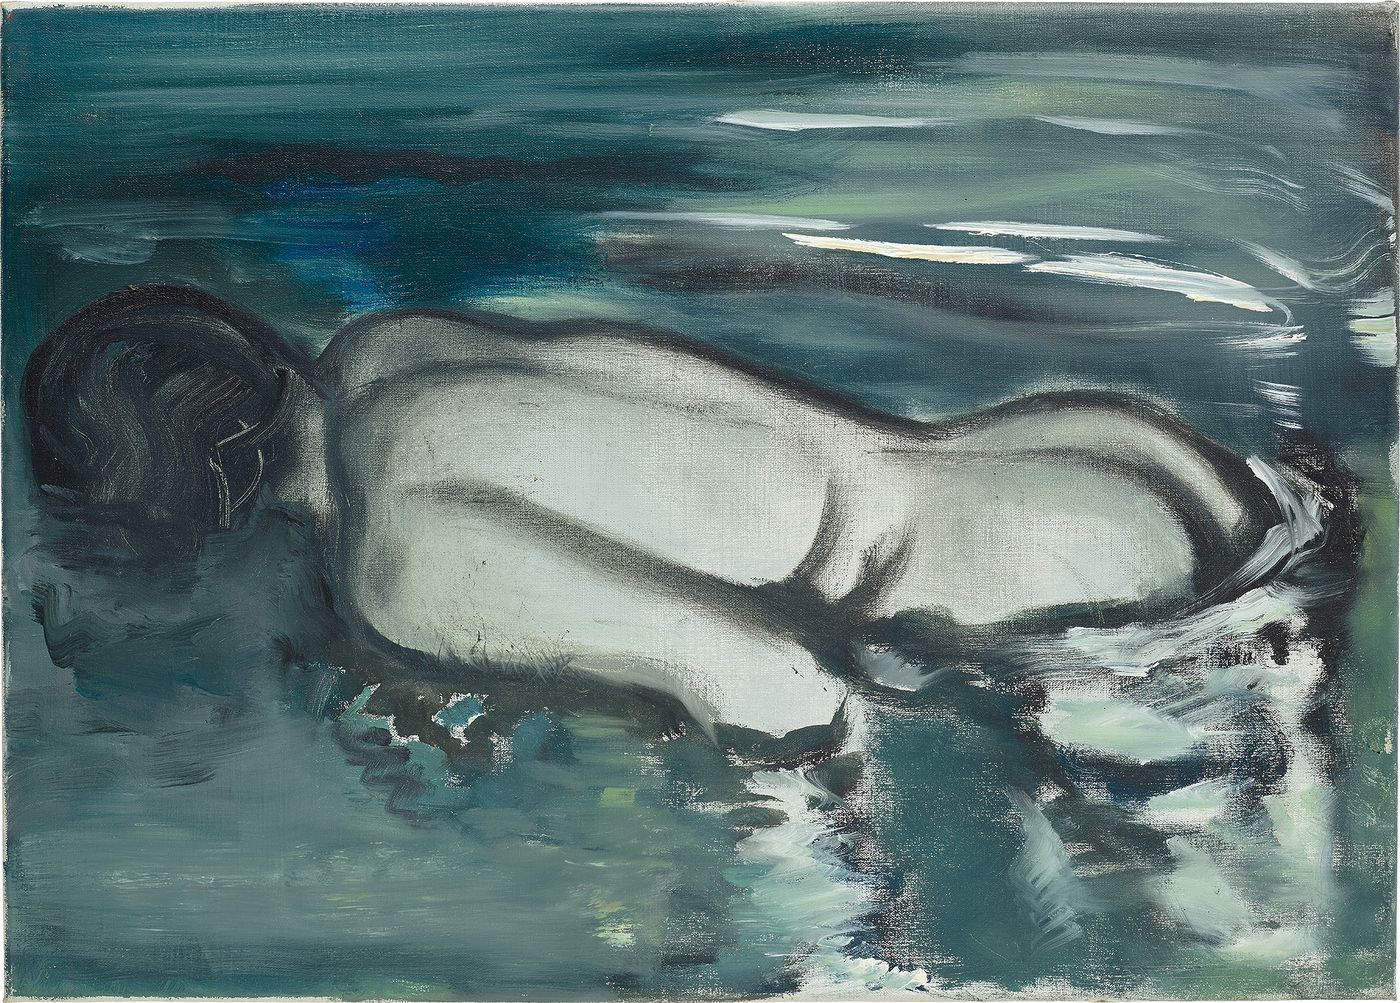 Phillips Marlene Dumas And The Eternal Search For Meaning